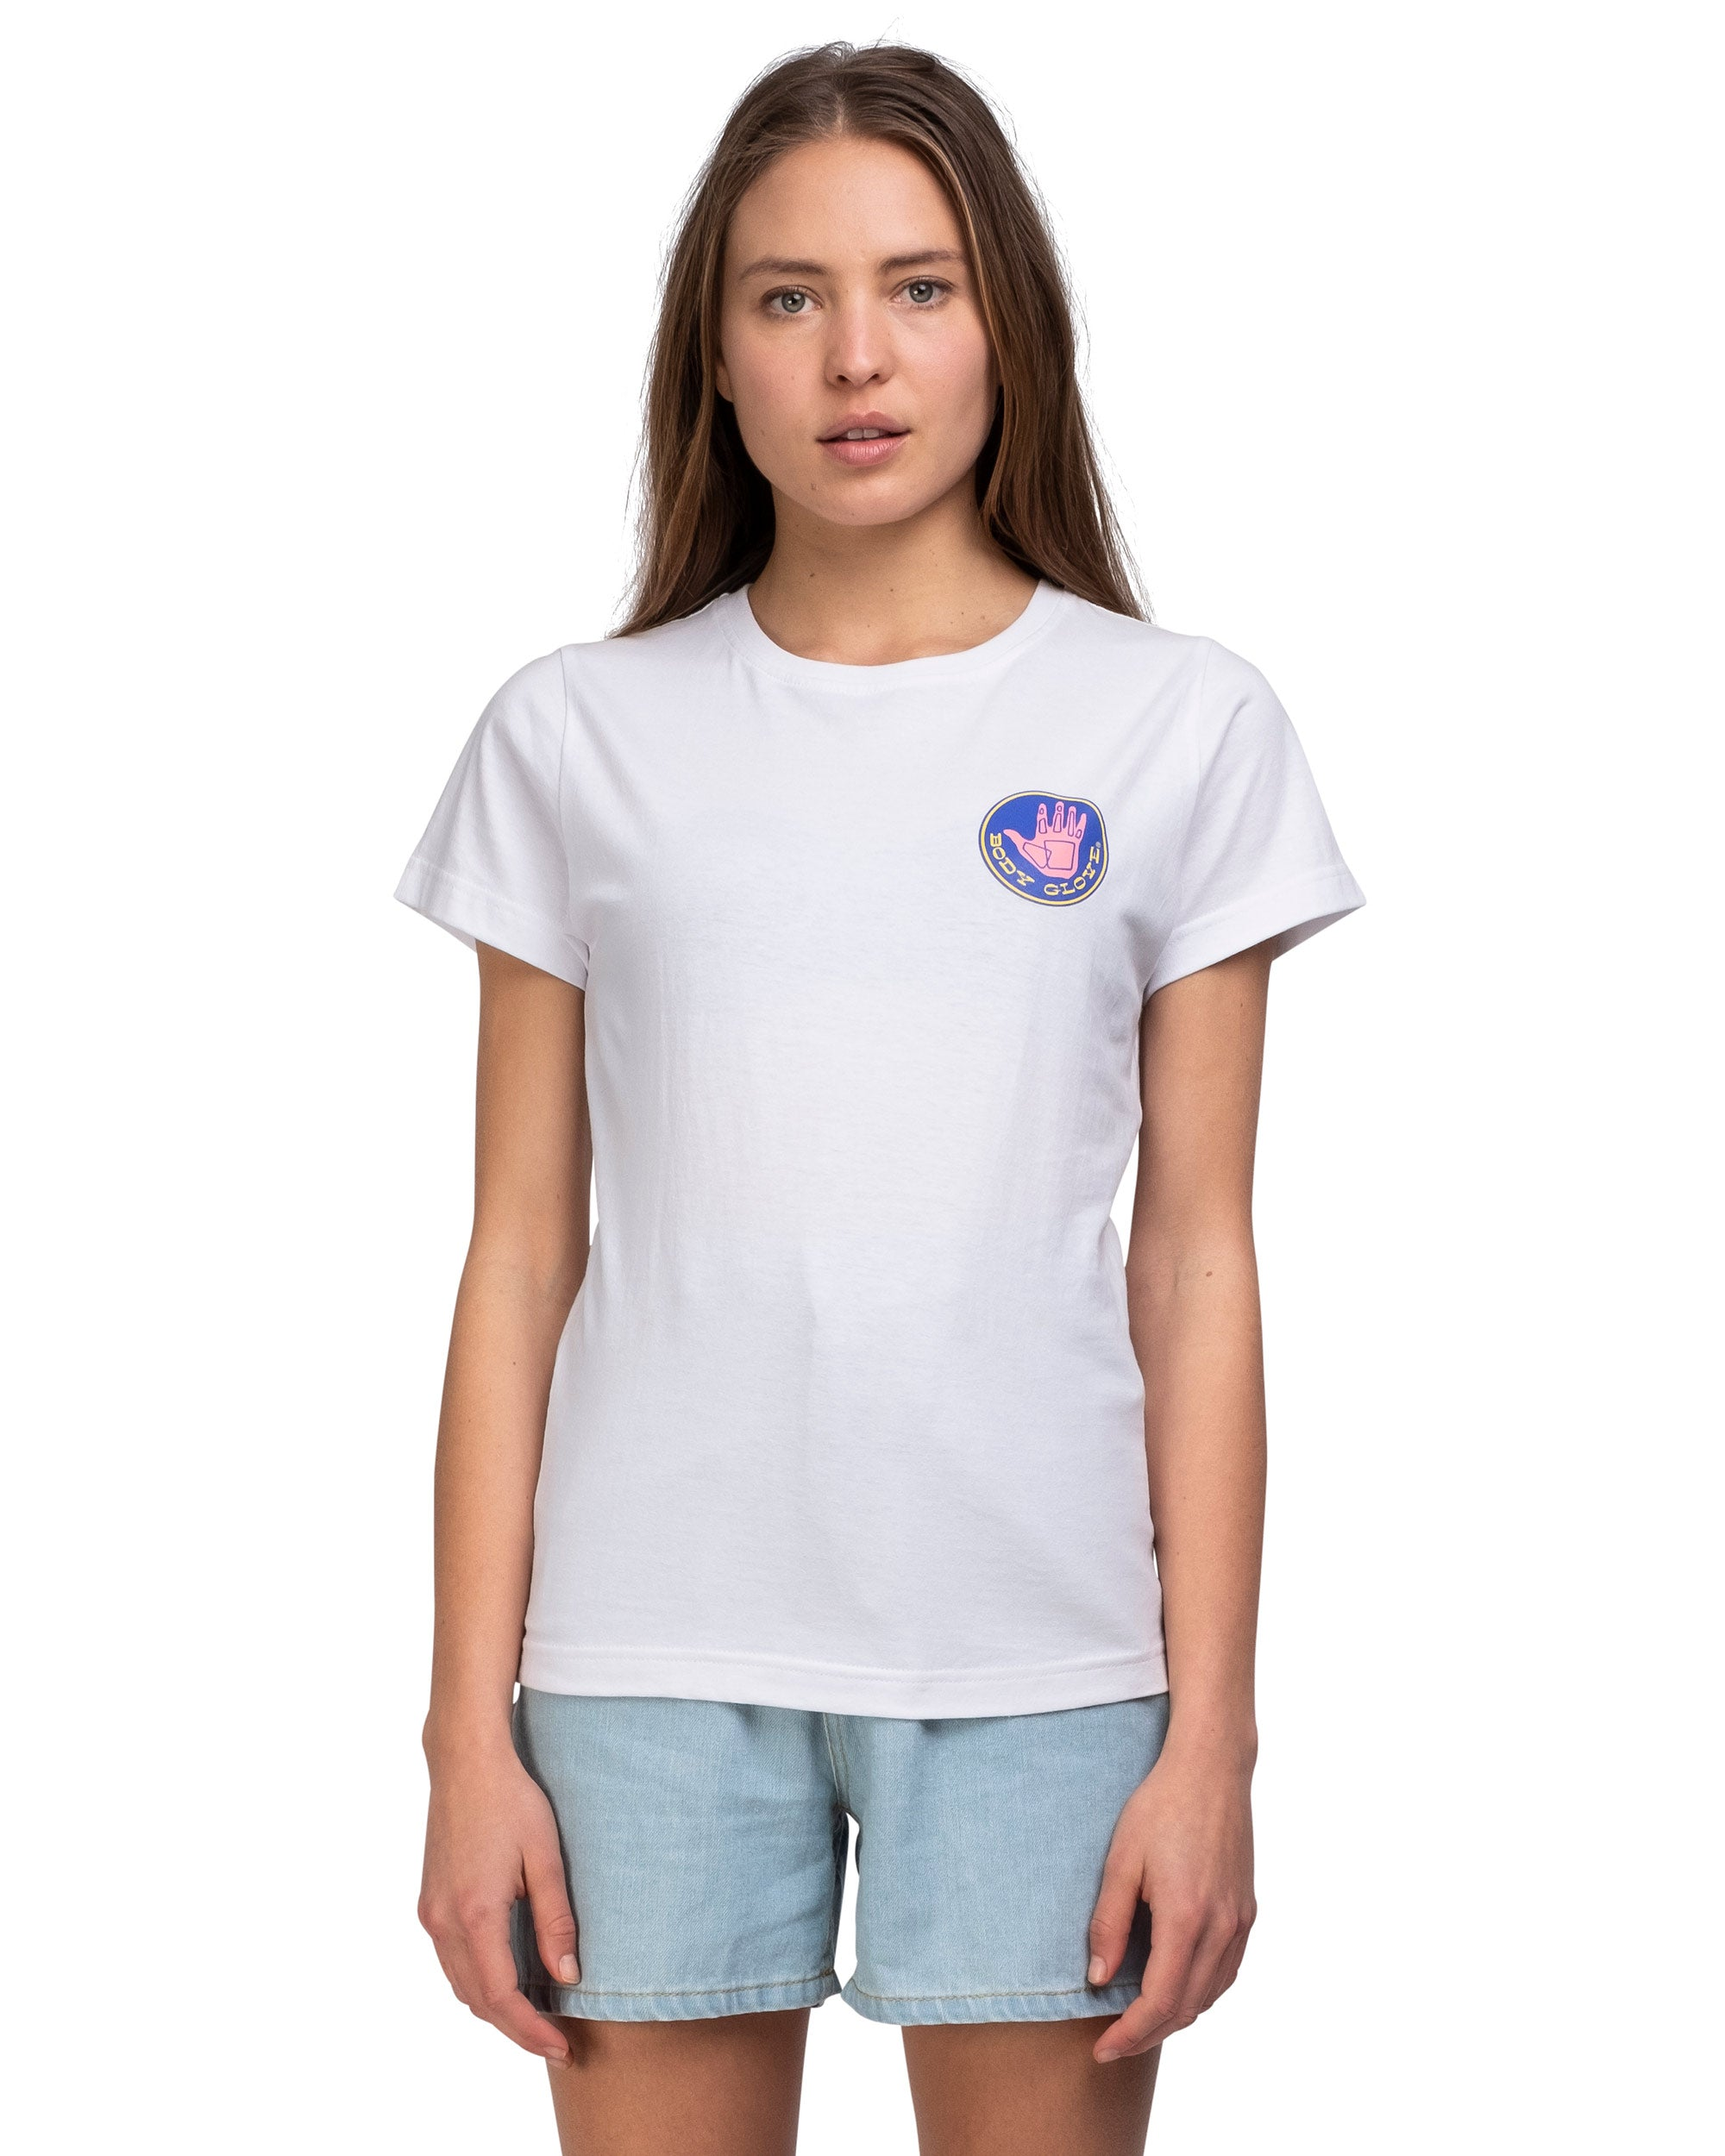 Women's OG T-Shirt - White